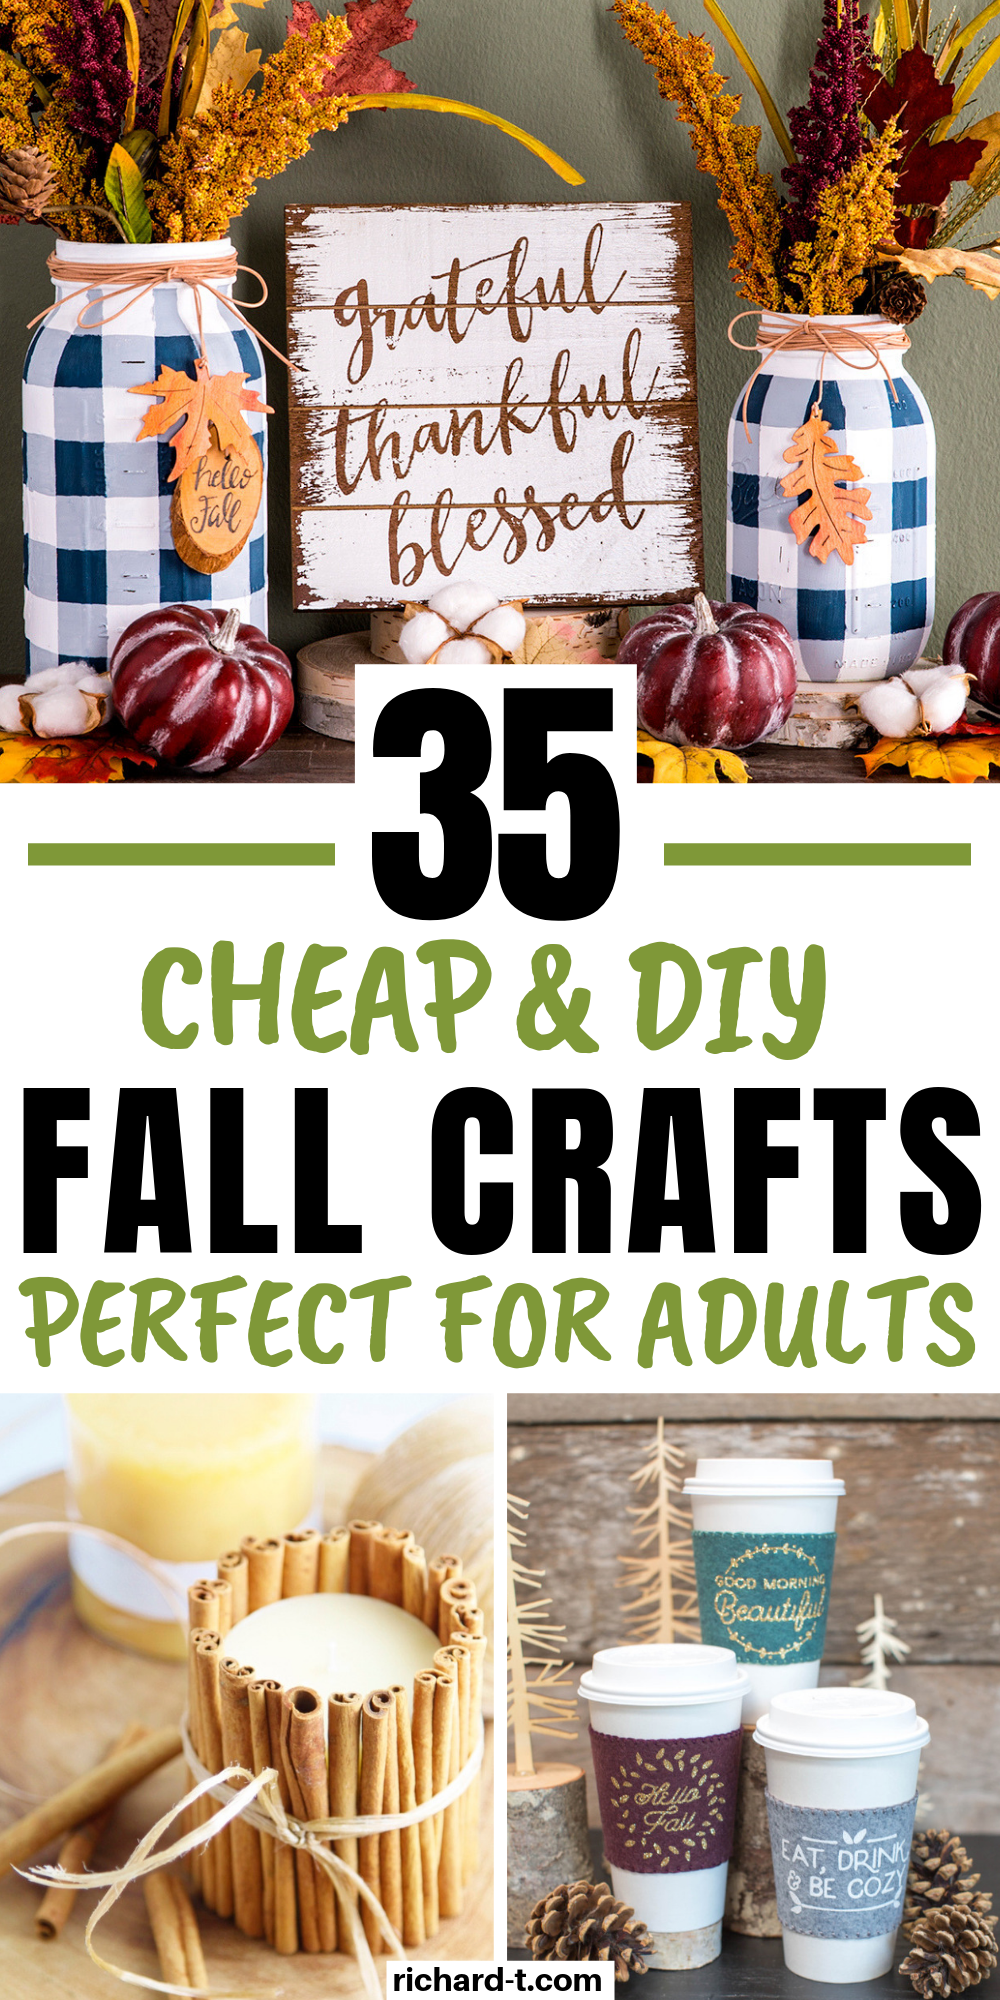 26+ Diy fall crafts to sell ideas in 2021